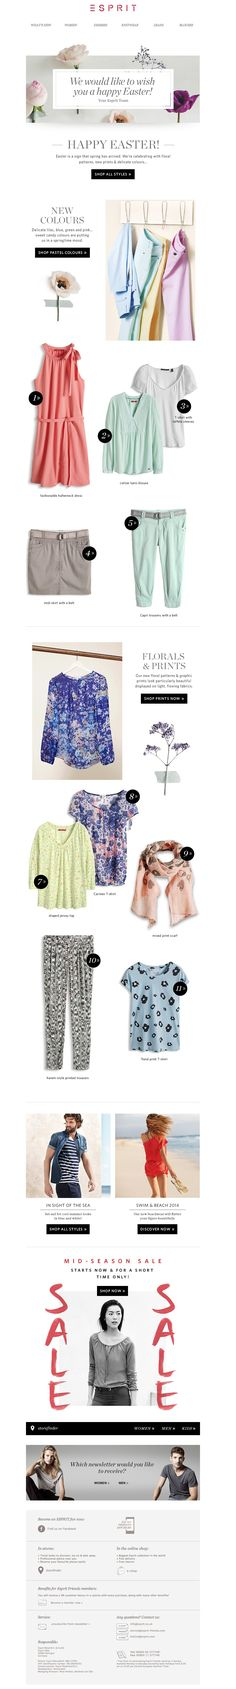 #newsletter Esprit 04.2014 The mid-season SALE starts now || Floral prints & delicate colours!